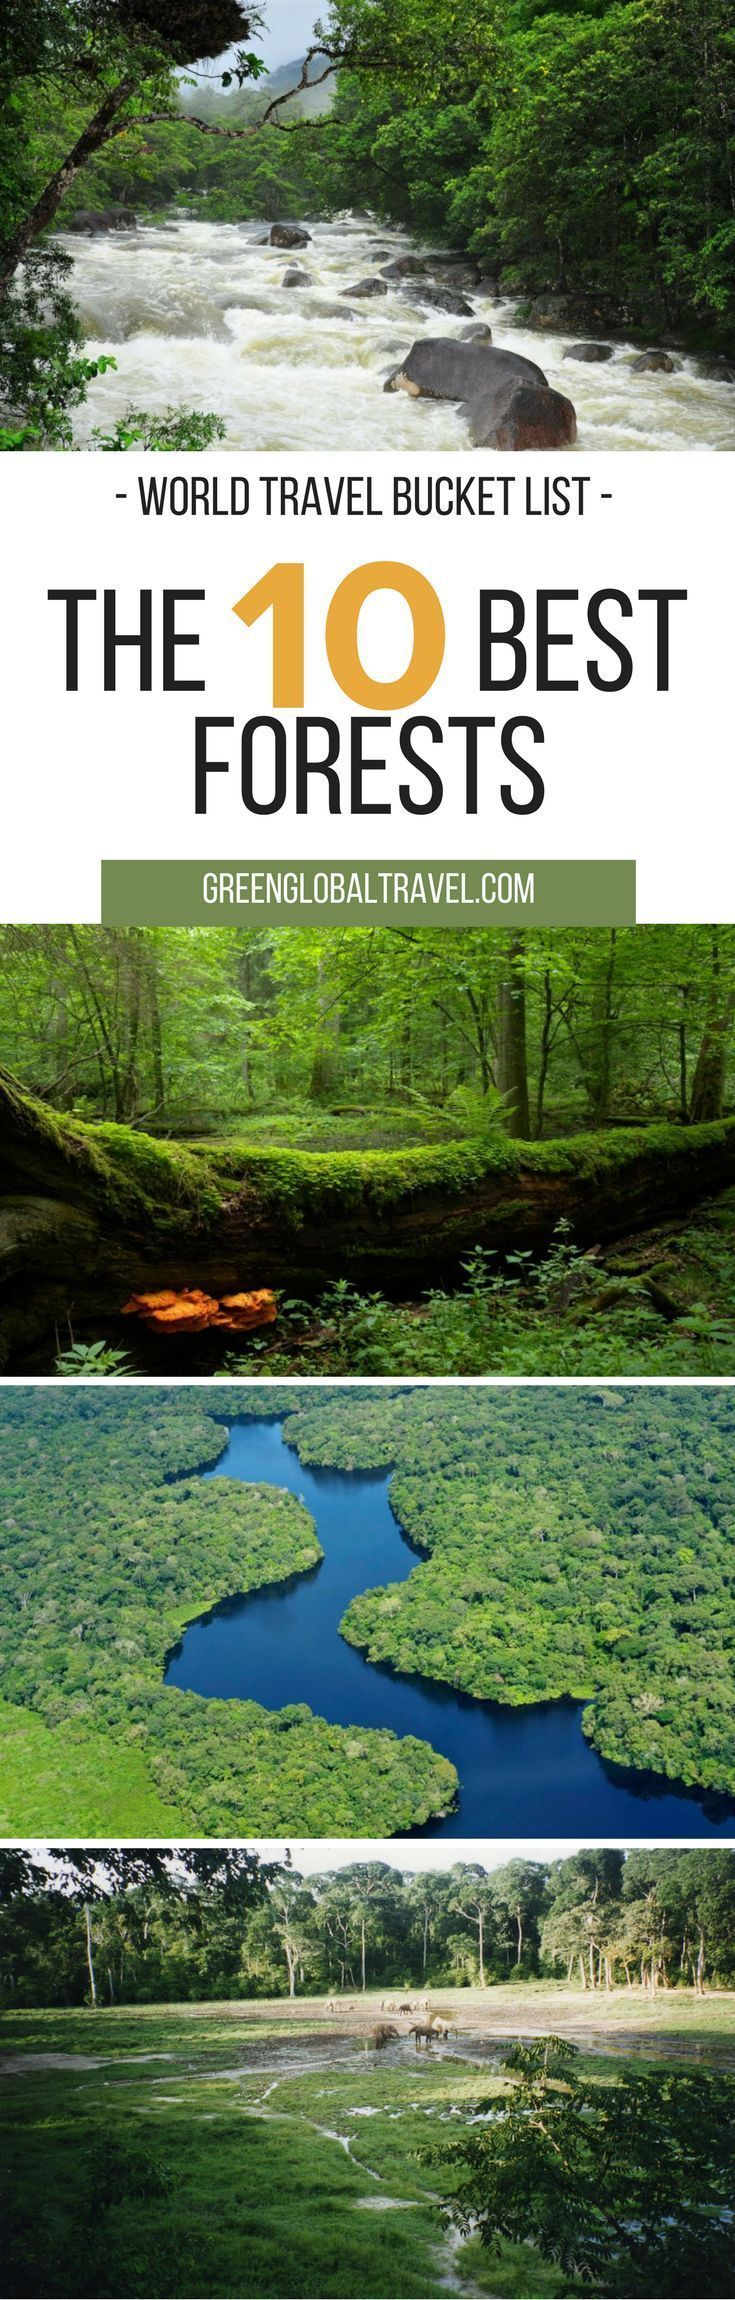 Here are our top 10 most beautiful forests for your world travel bucket list! | Amazon Rainforest | South America | Biodiversity | Bialowieza Primeval Forest | Congo Basin Forest | UNESCO | Europe | Daintree Rainforest | Australia | Forests of New Guinea | Miombo Woodlands | Africa | Sequoia Forests | USA | Sumatra Rainforest | Tiaga Biome | Asia | Valdivian Rainforest |